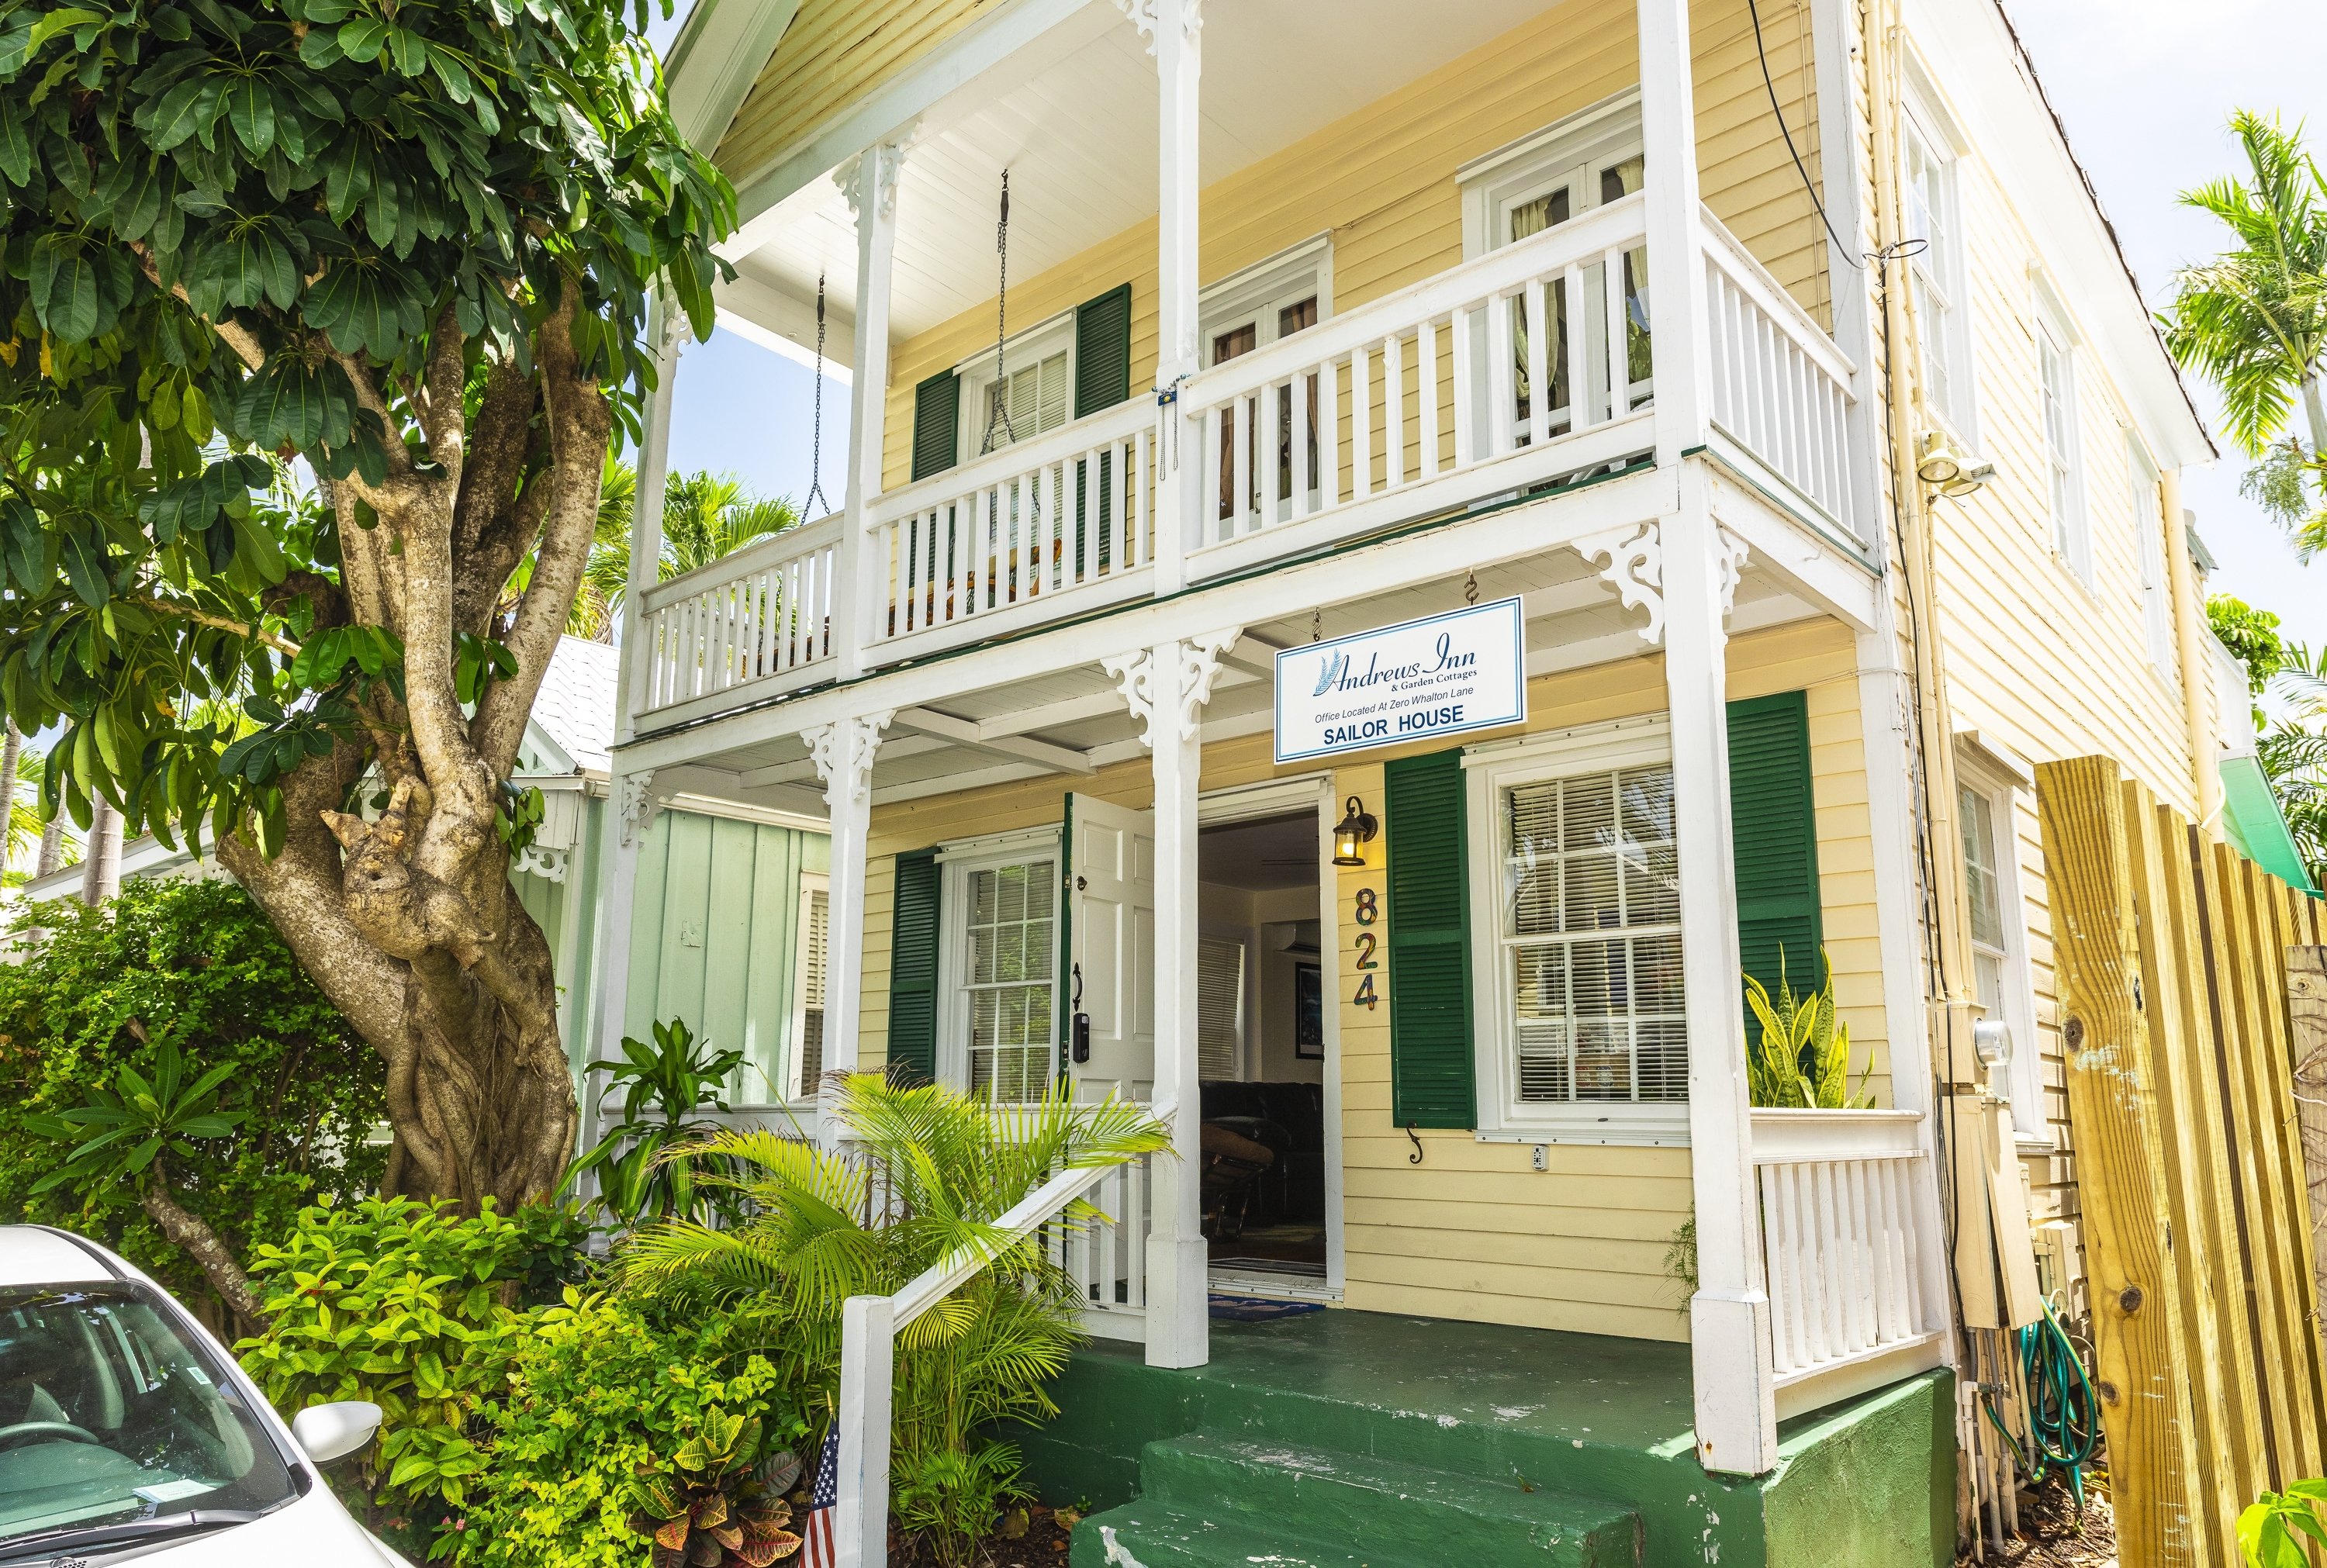 Sailor House, Cottages - Andrews Inn Key West - Bed And Breakfast In with regard to Garden House Key West Bed And Breakfast